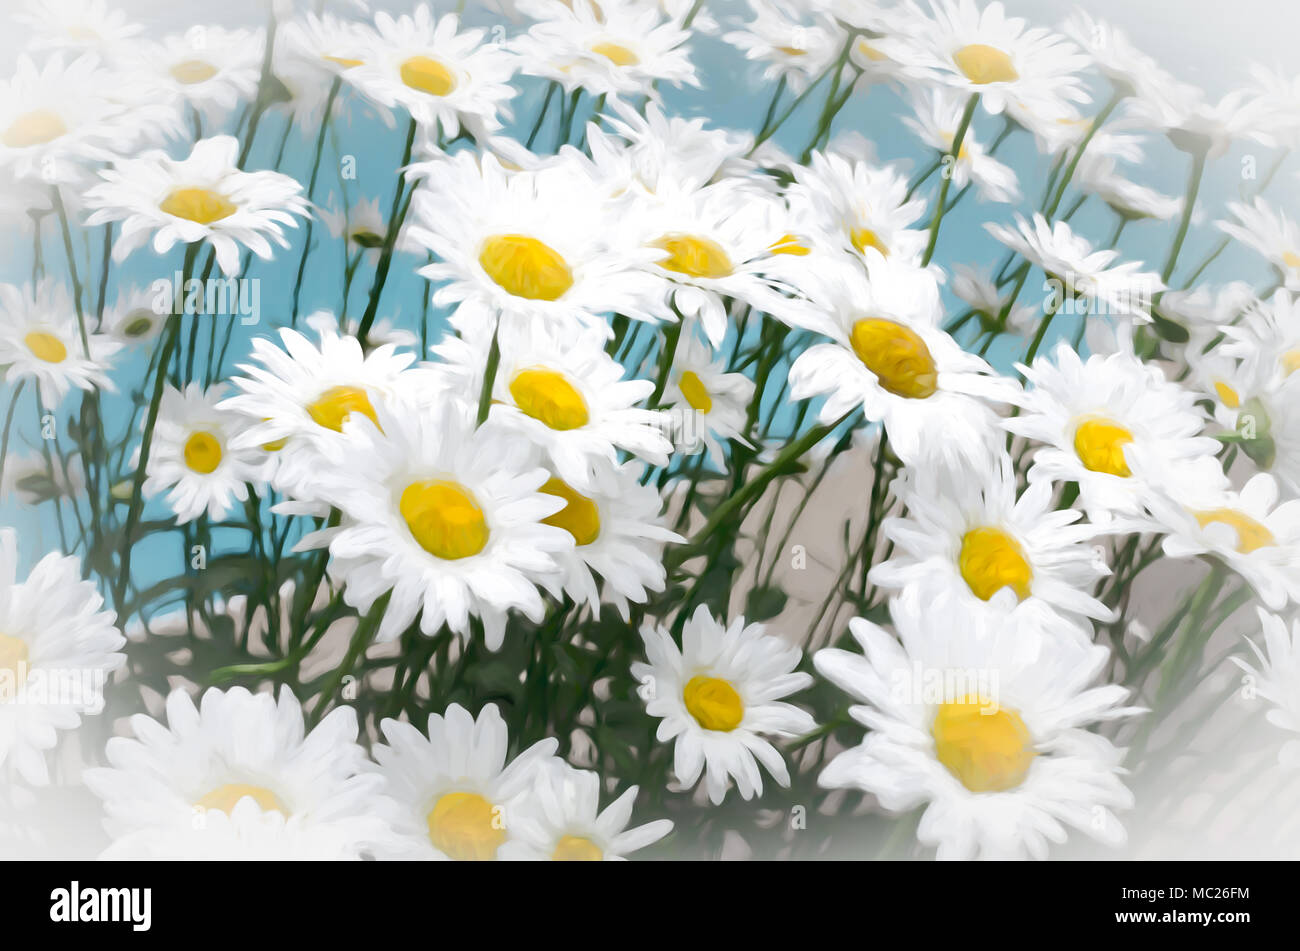 Daisies Flowers In Painting Style Look Like Painting By Hand Stock